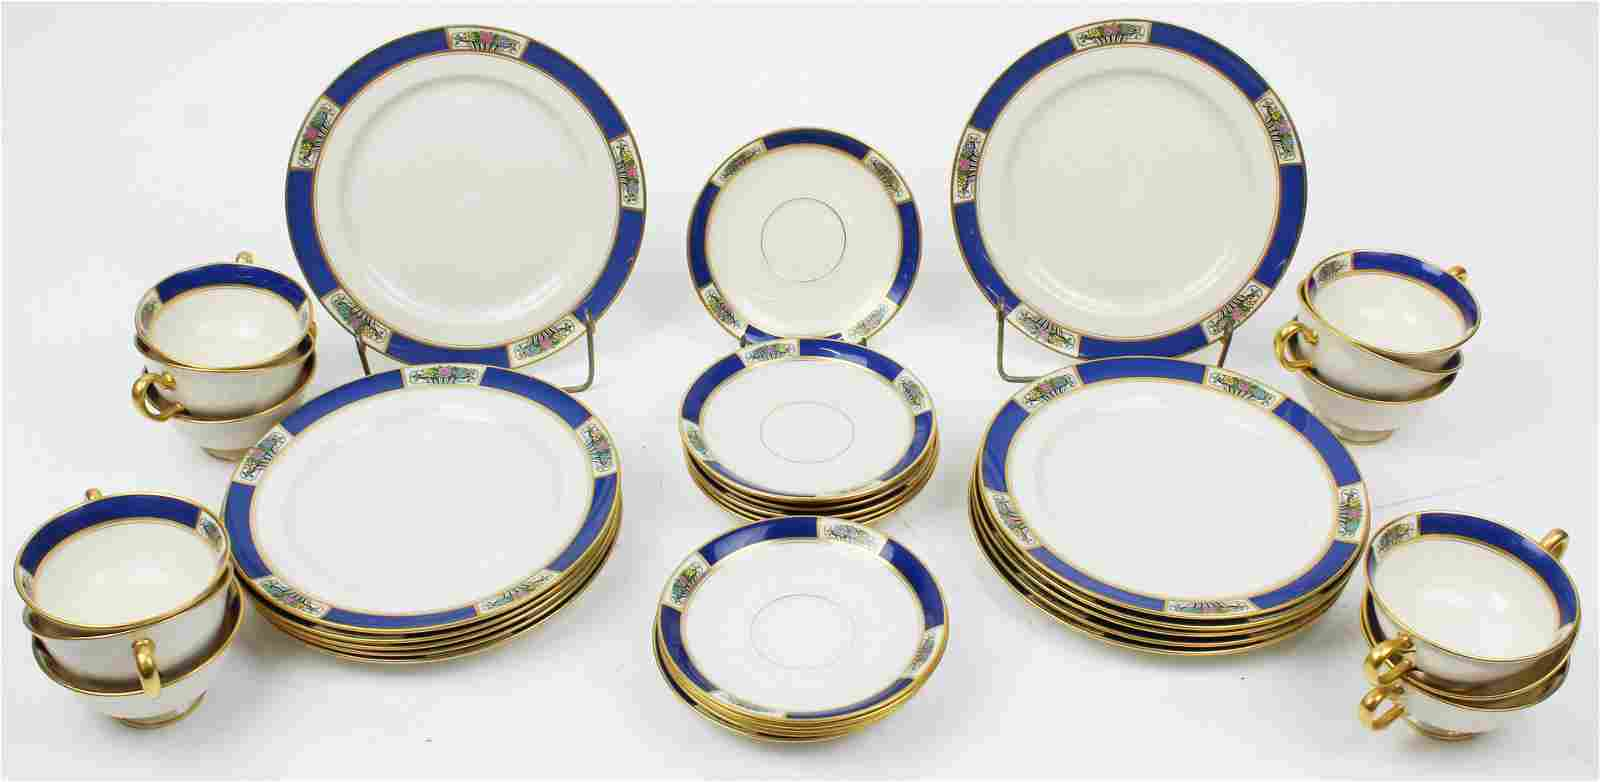 36 pcs. Lenox Blue Banded Art Deco Dinnerware